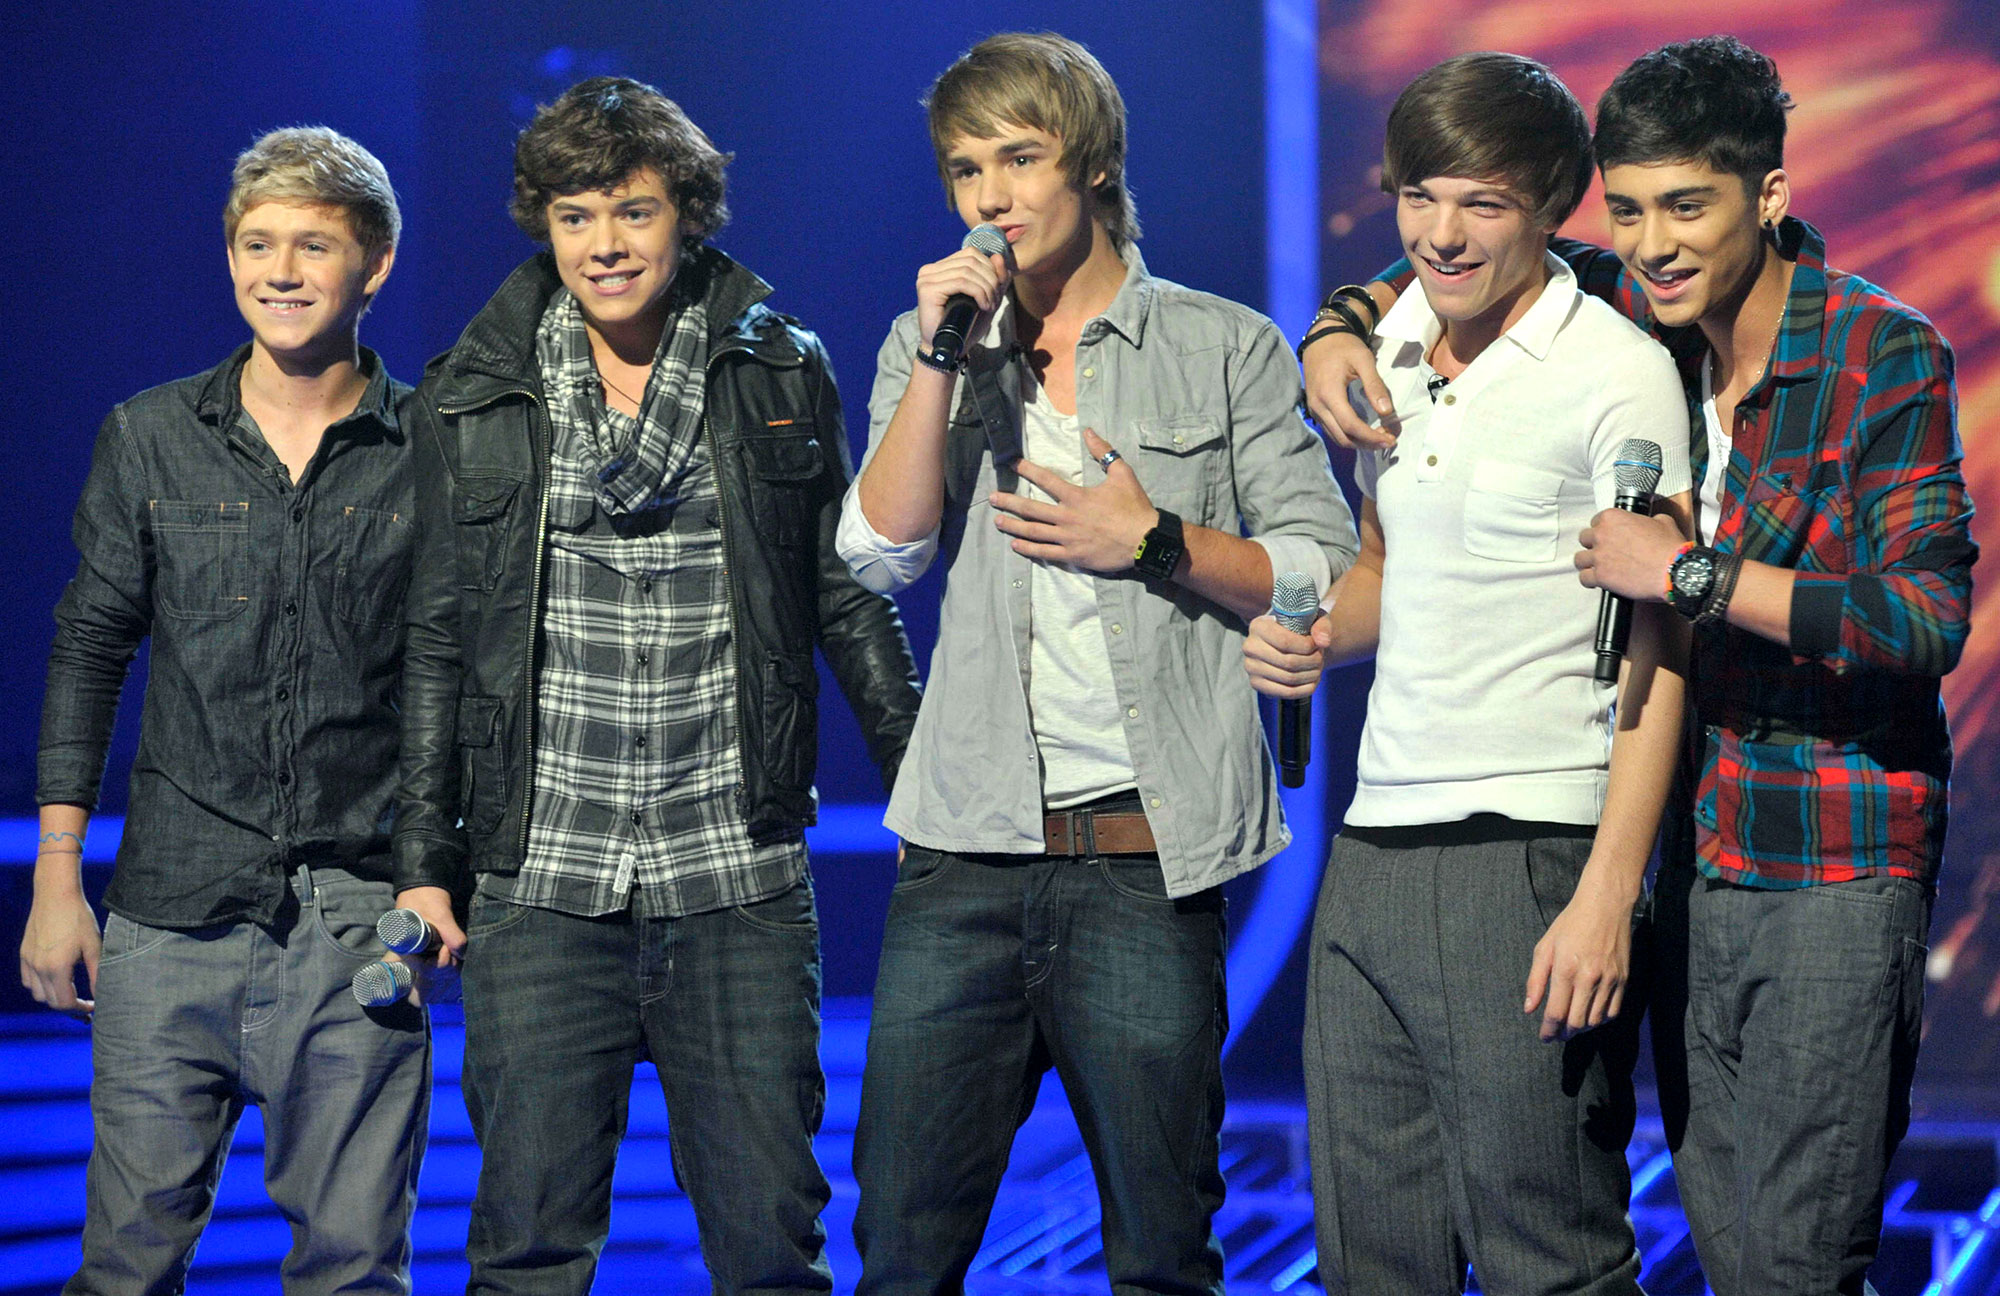 One Direction - Liam, Niall, Harry, Louis and Zayn X Factor